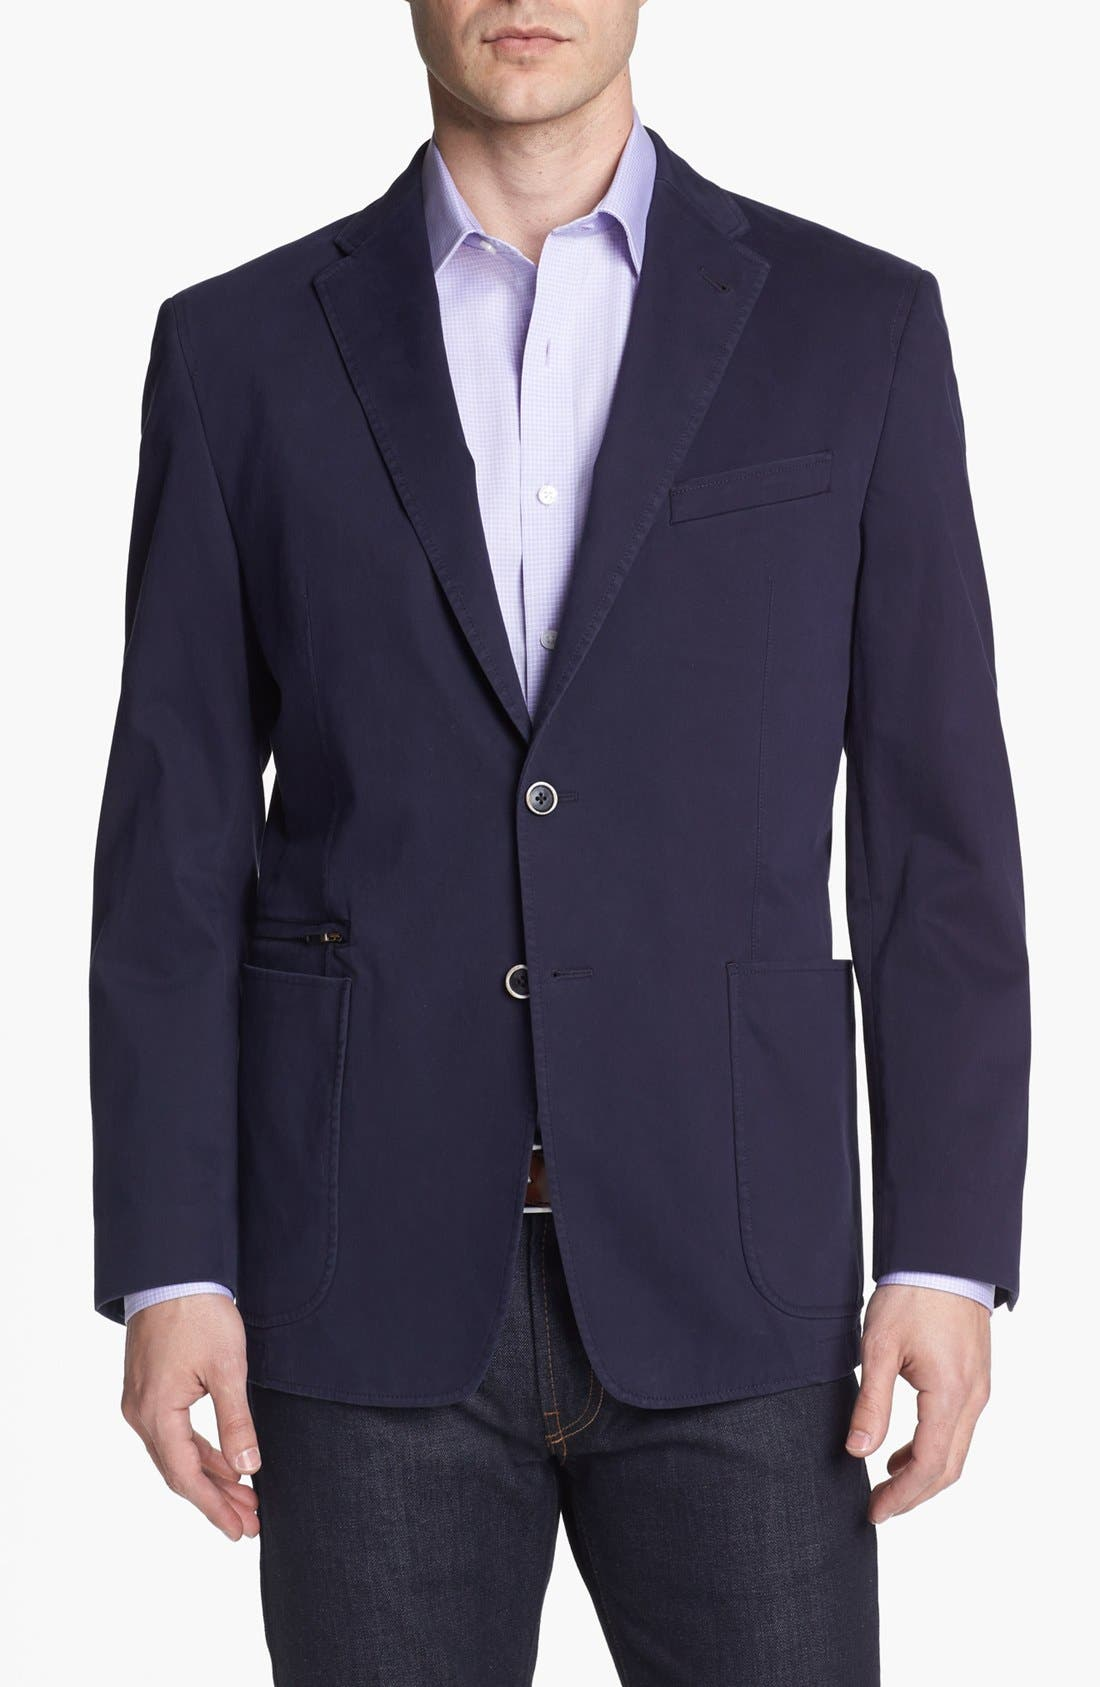 Alternate Image 1 Selected - Joseph Abboud Cotton Sportcoat